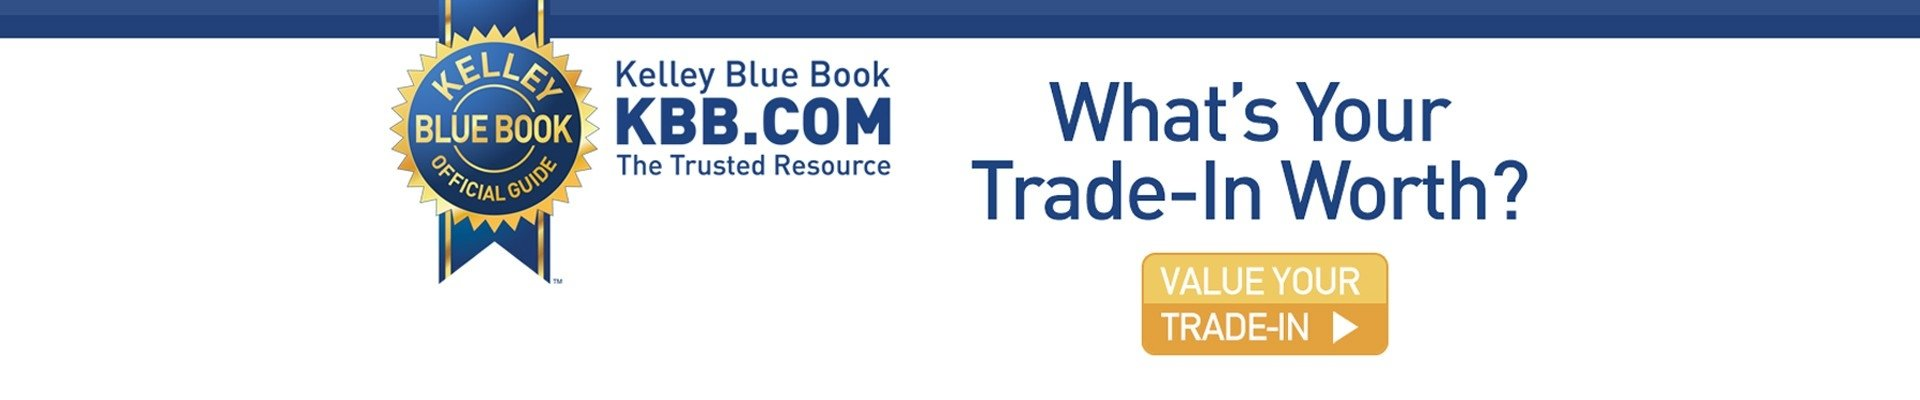 kelley blue book trade-in value